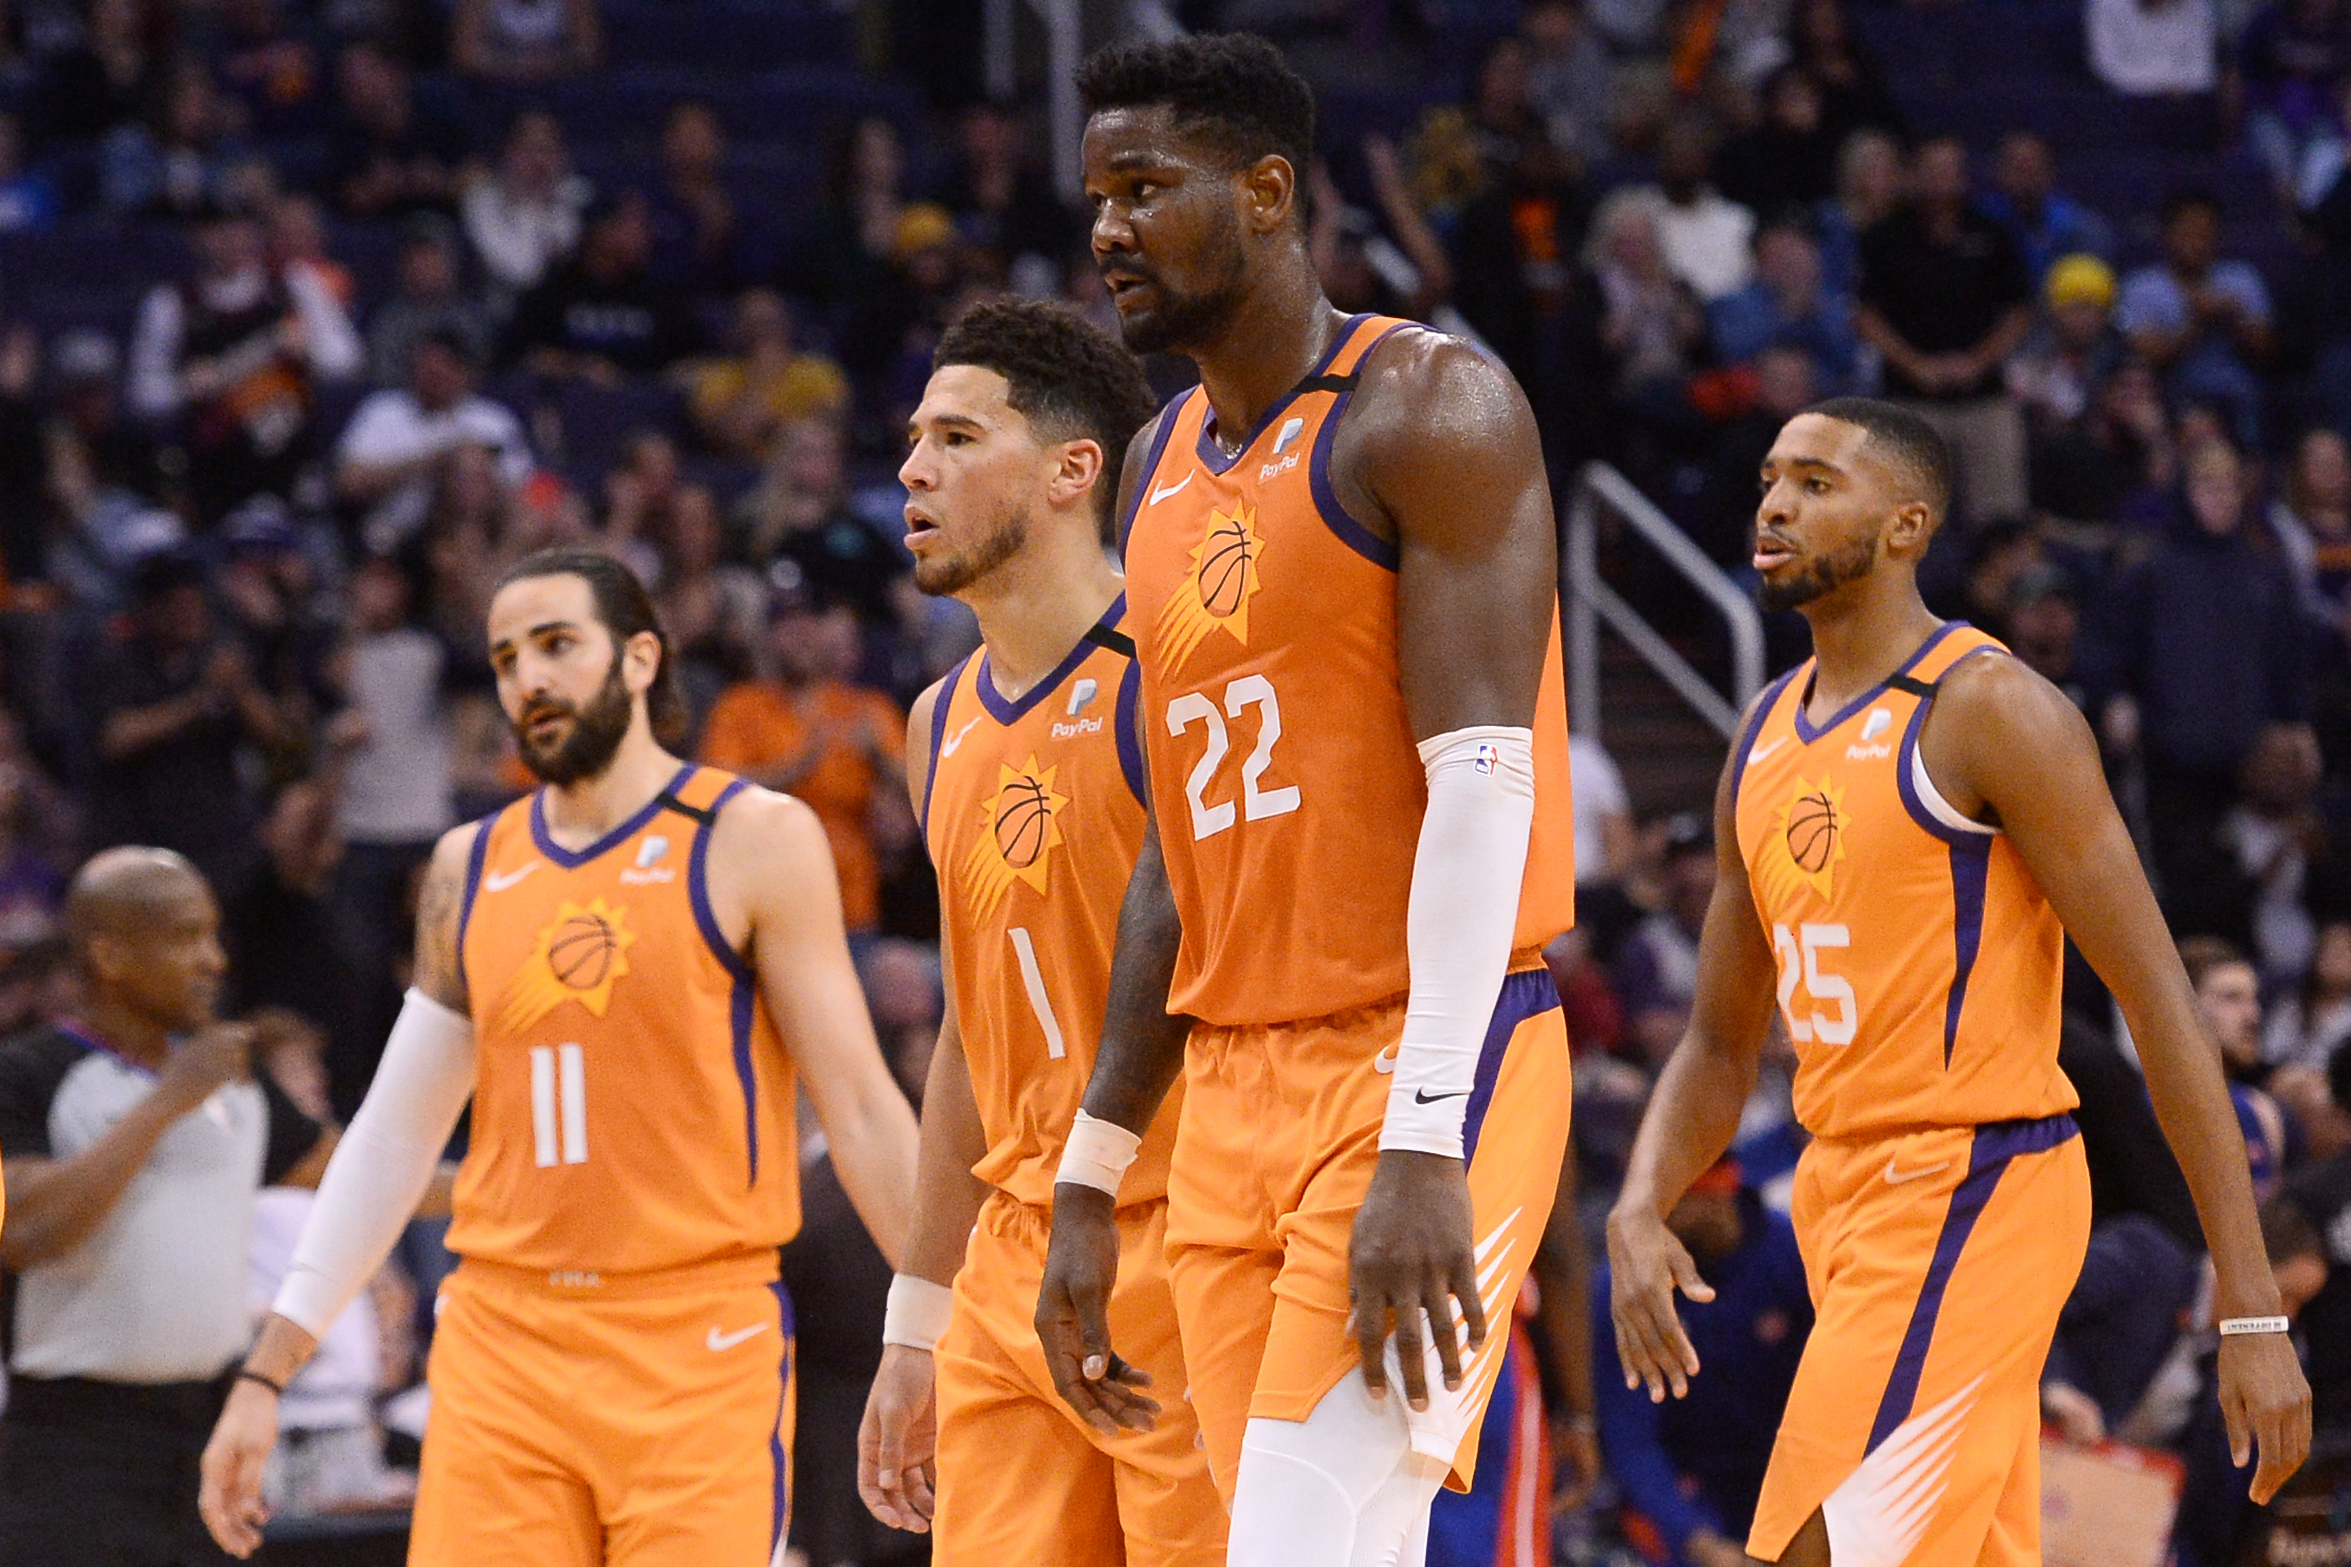 NBA: Detroit Pistons at Phoenix Suns